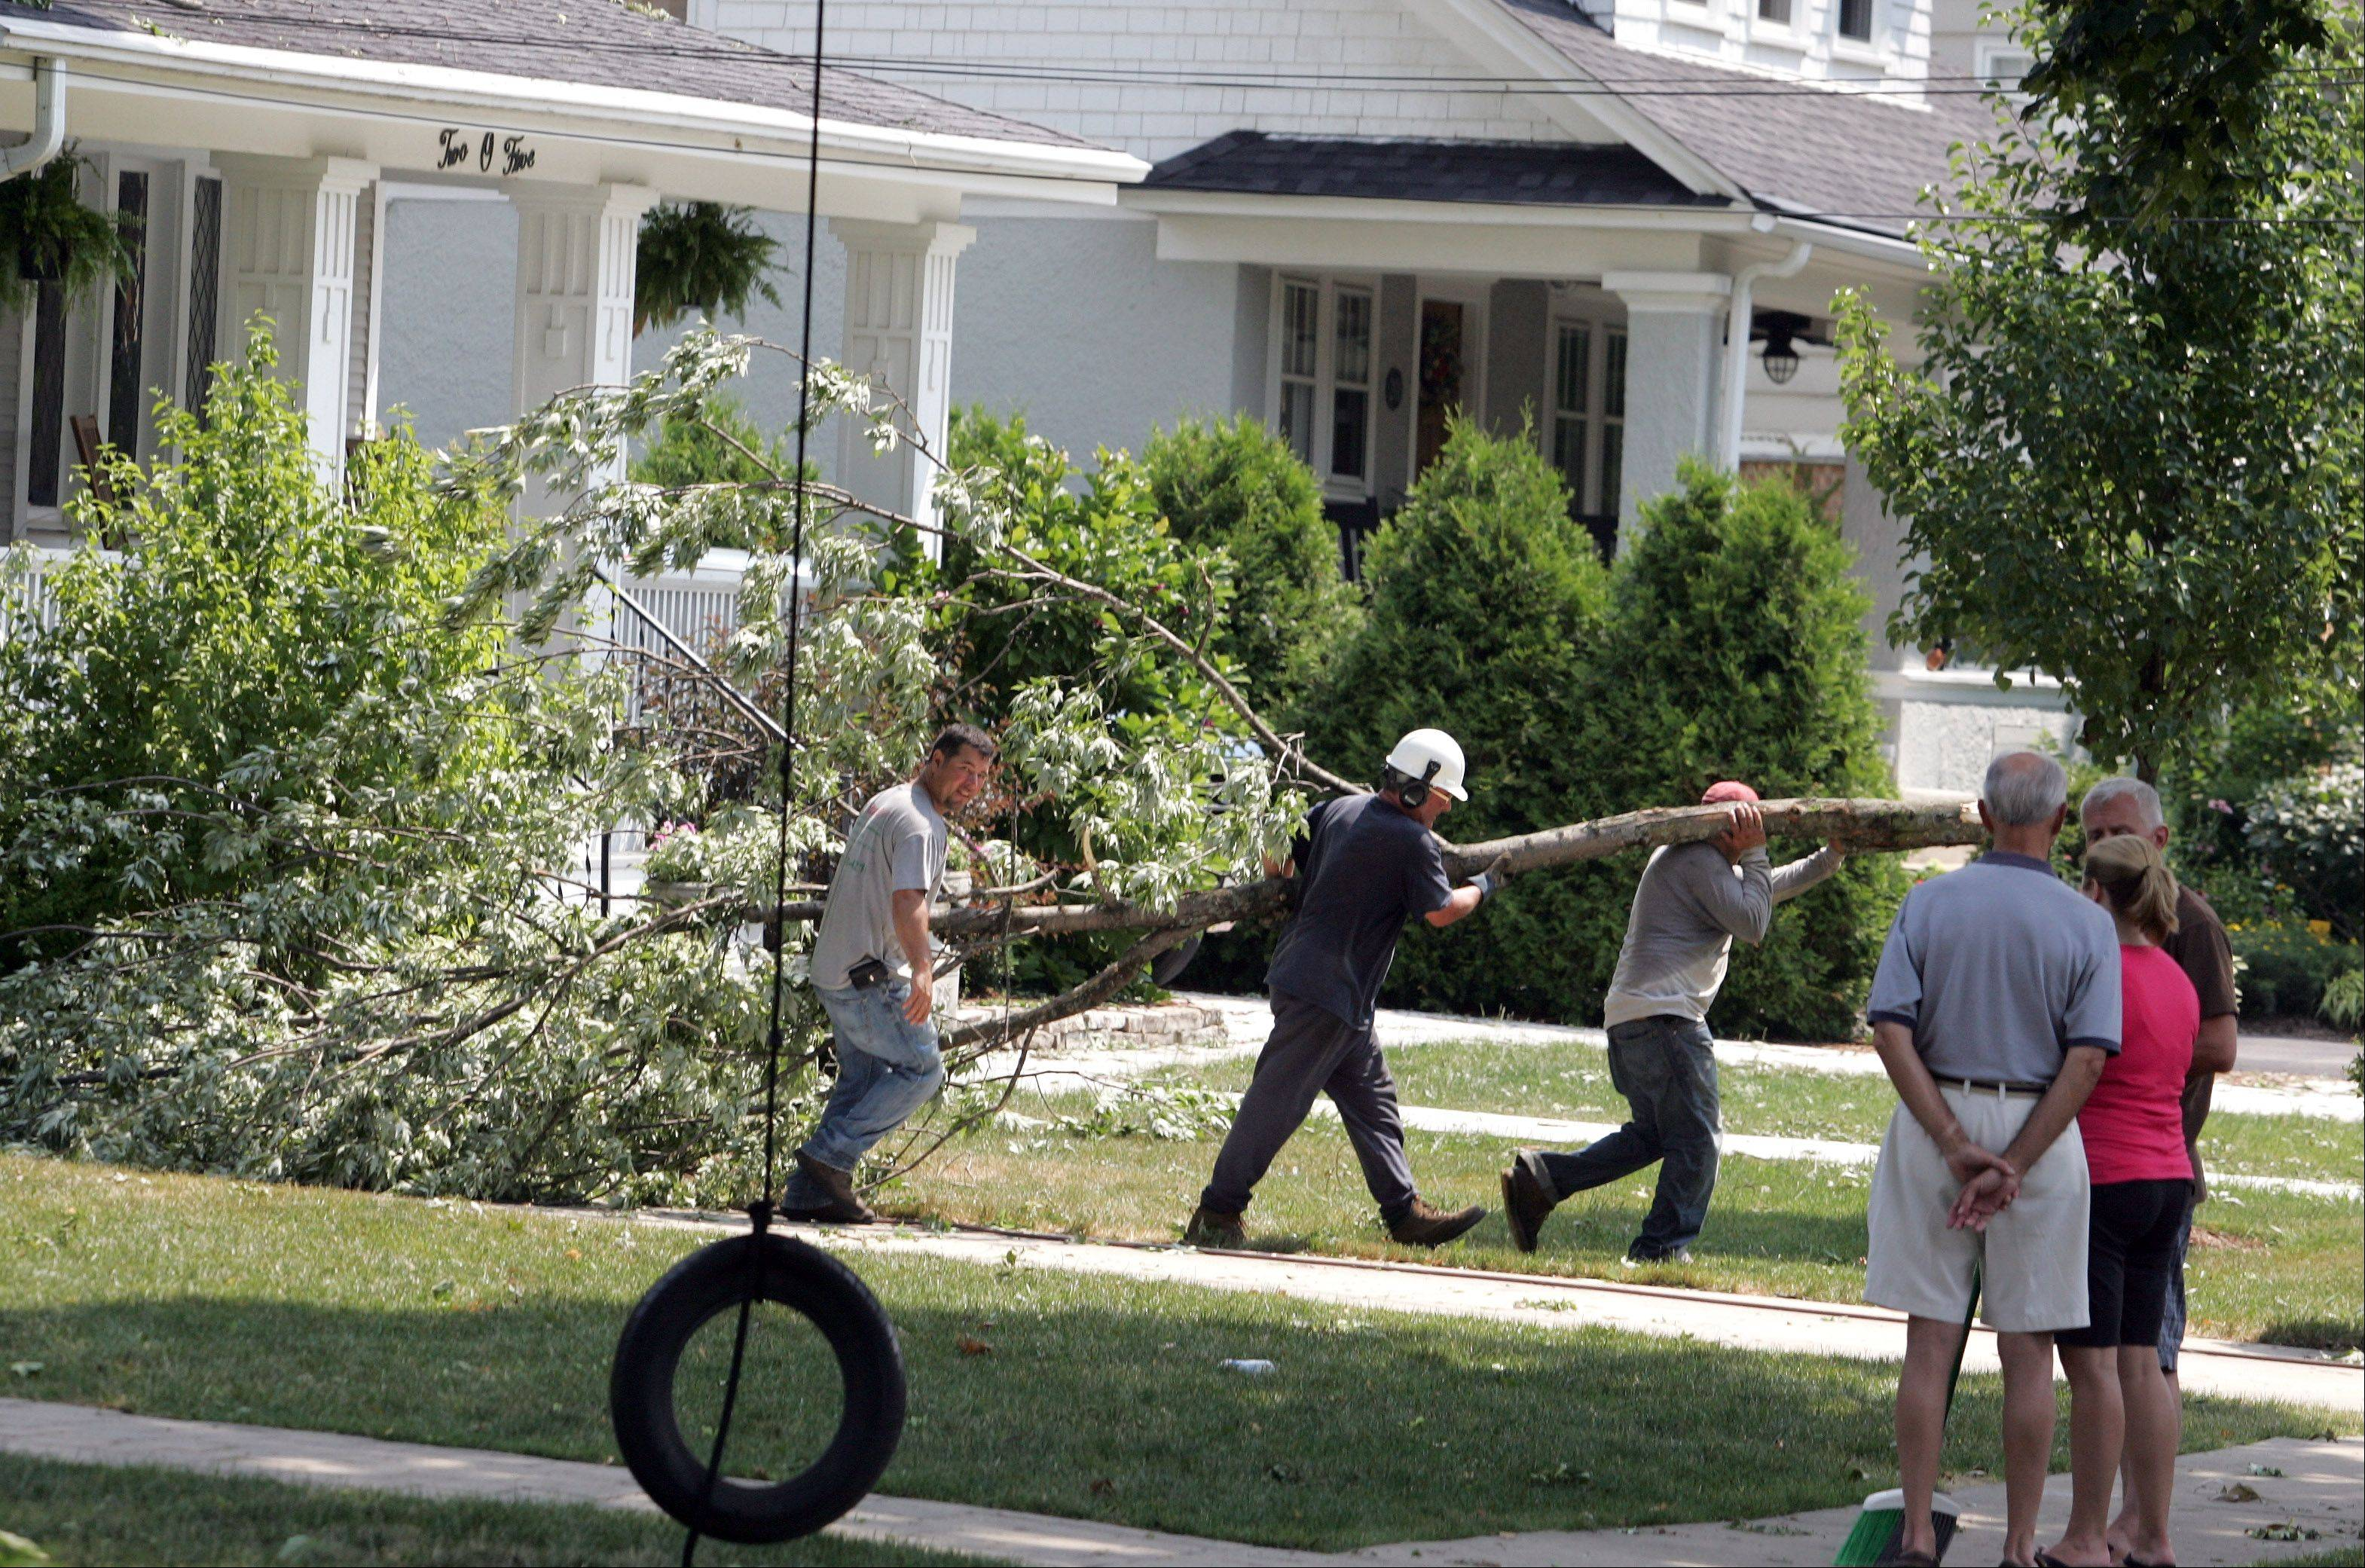 Crews carry away tree branches Monday morning after damage in the 200 block of West Jefferson in Wheaton due to Sunday's storm.